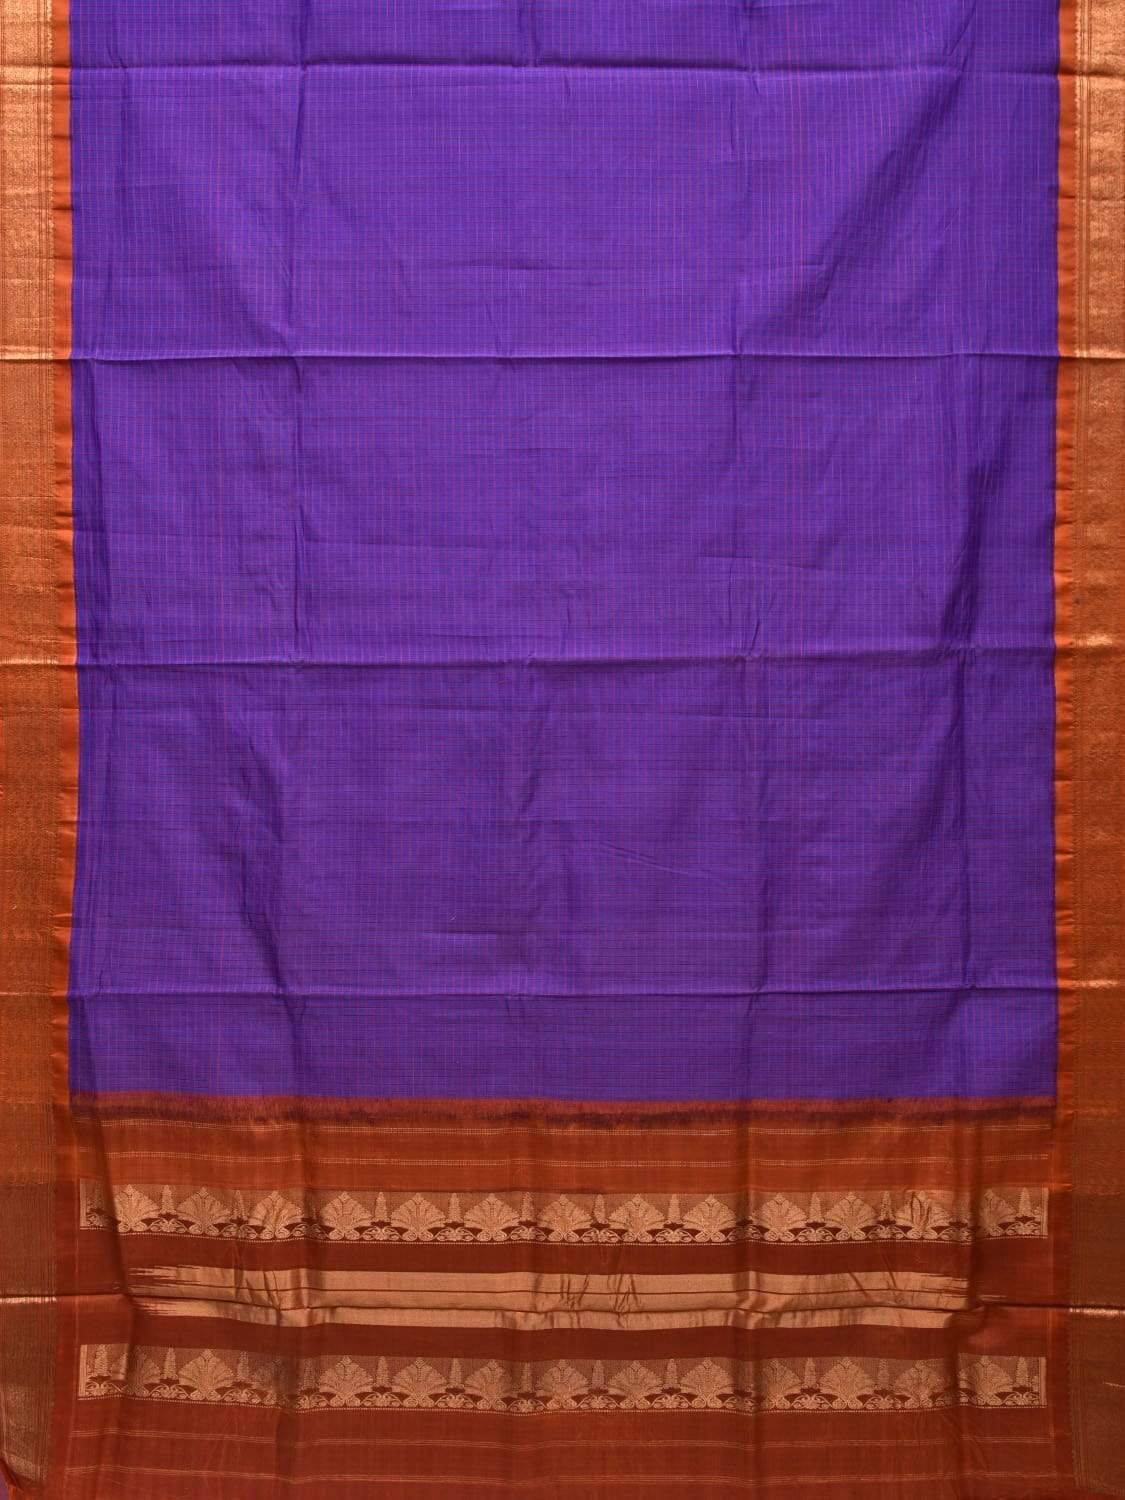 Purple and Rust Gadwal Silk Handloom Saree with Checks Design g0258